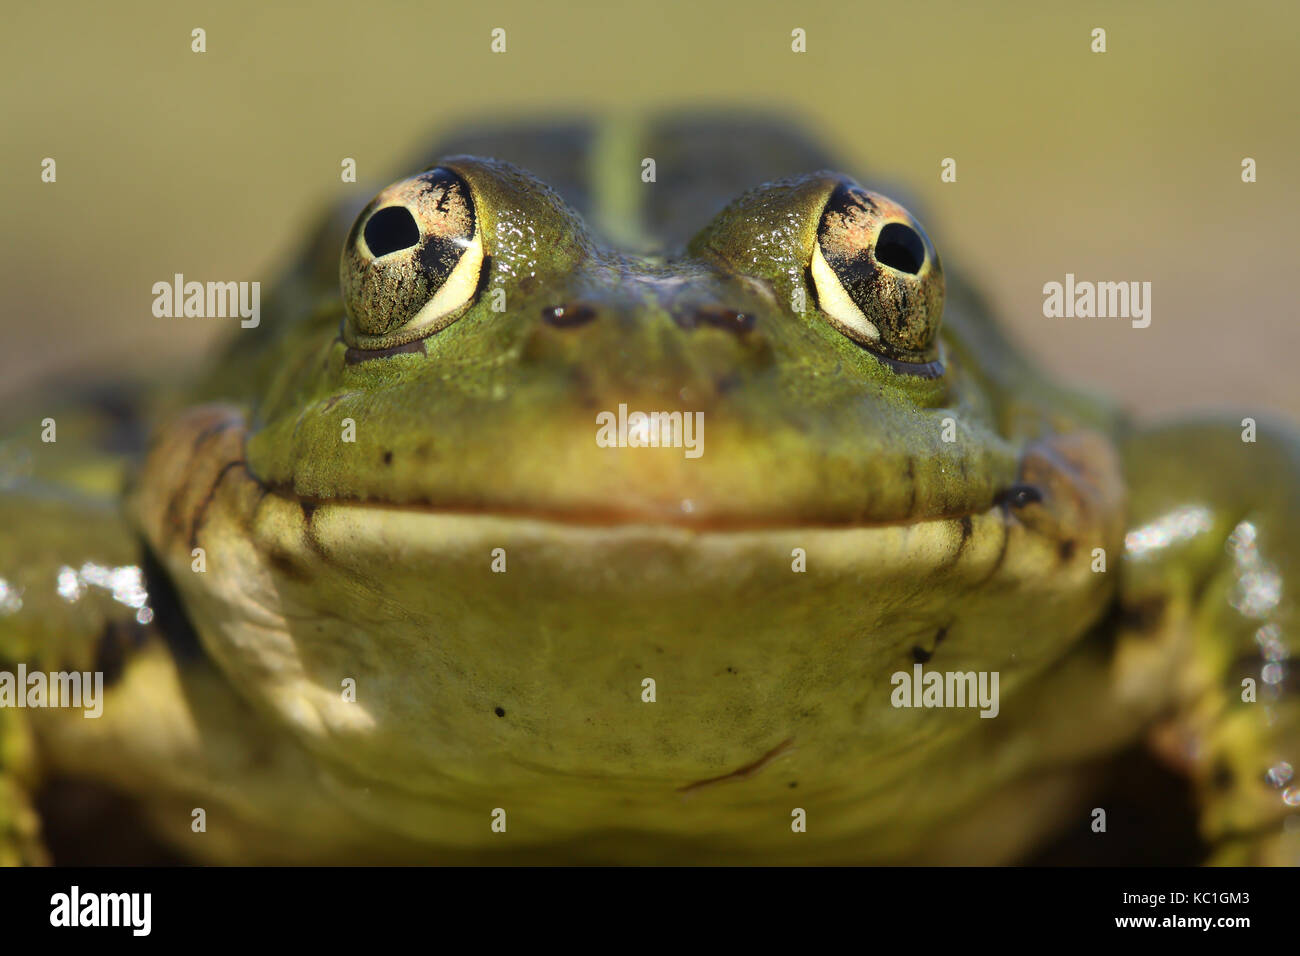 Perez,s frog (Pelophylax perezi) front view - Stock Image